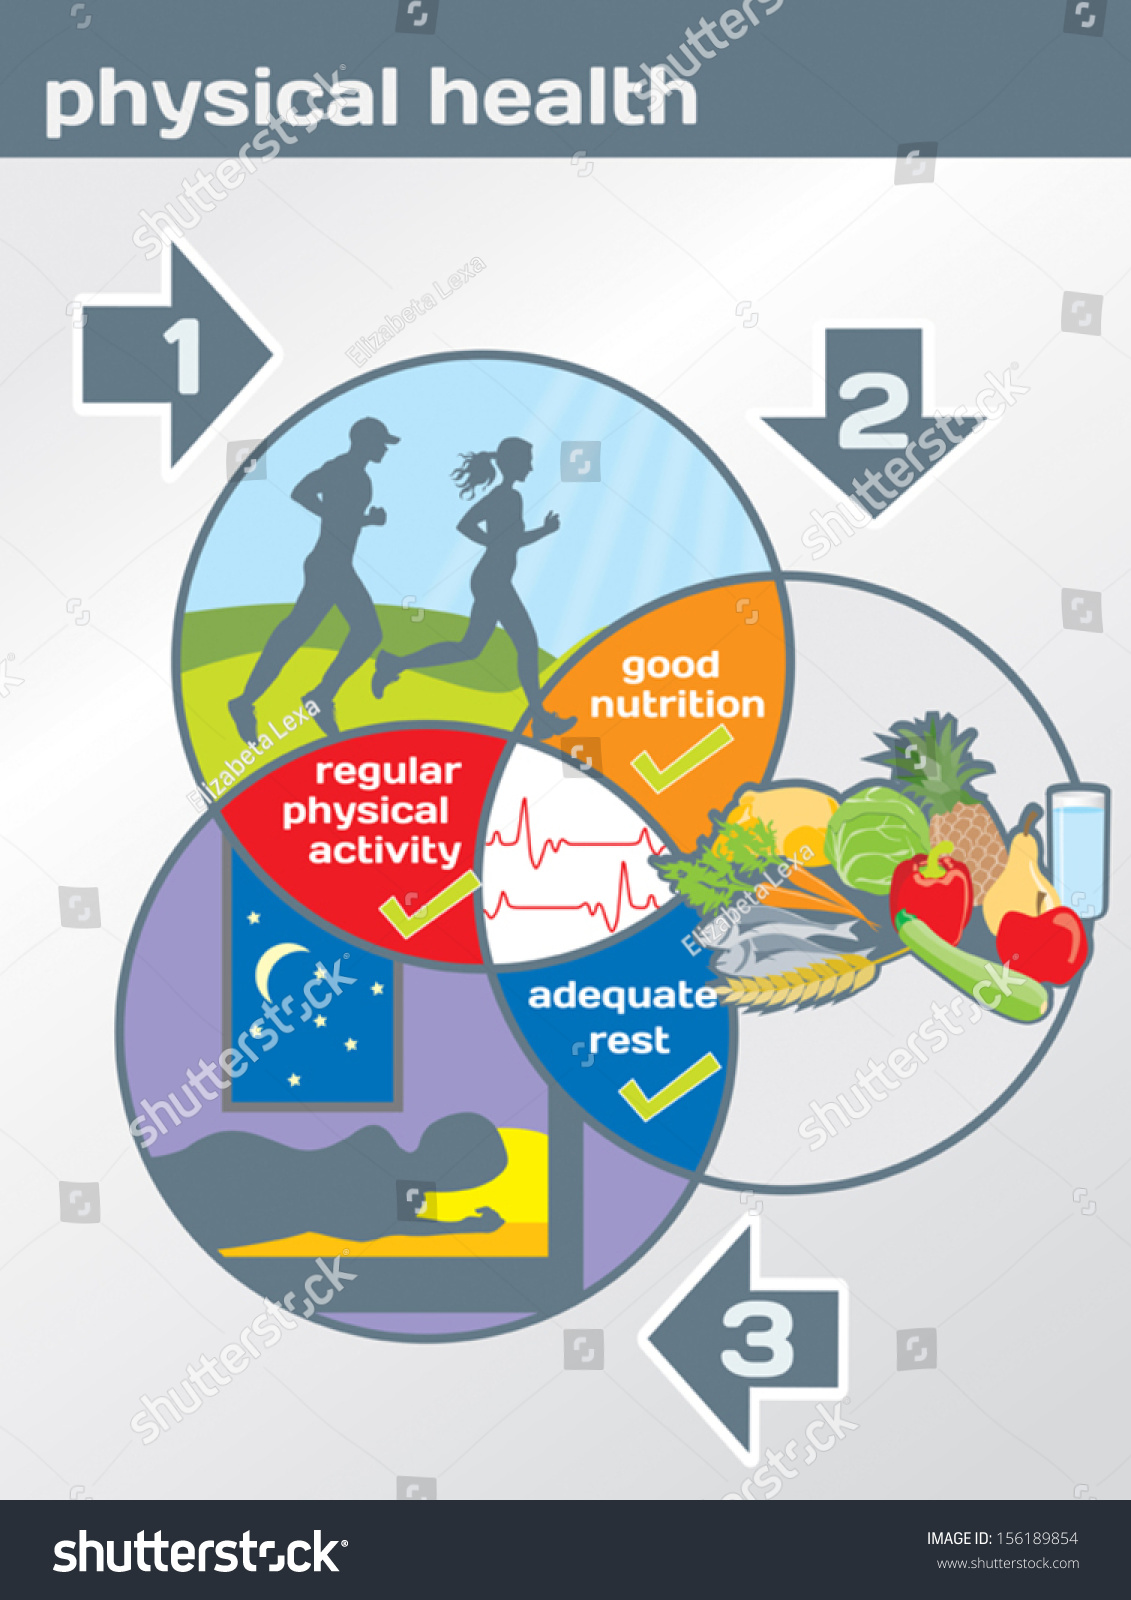 Physical Health Diagram Physical Activity Good Nutrition